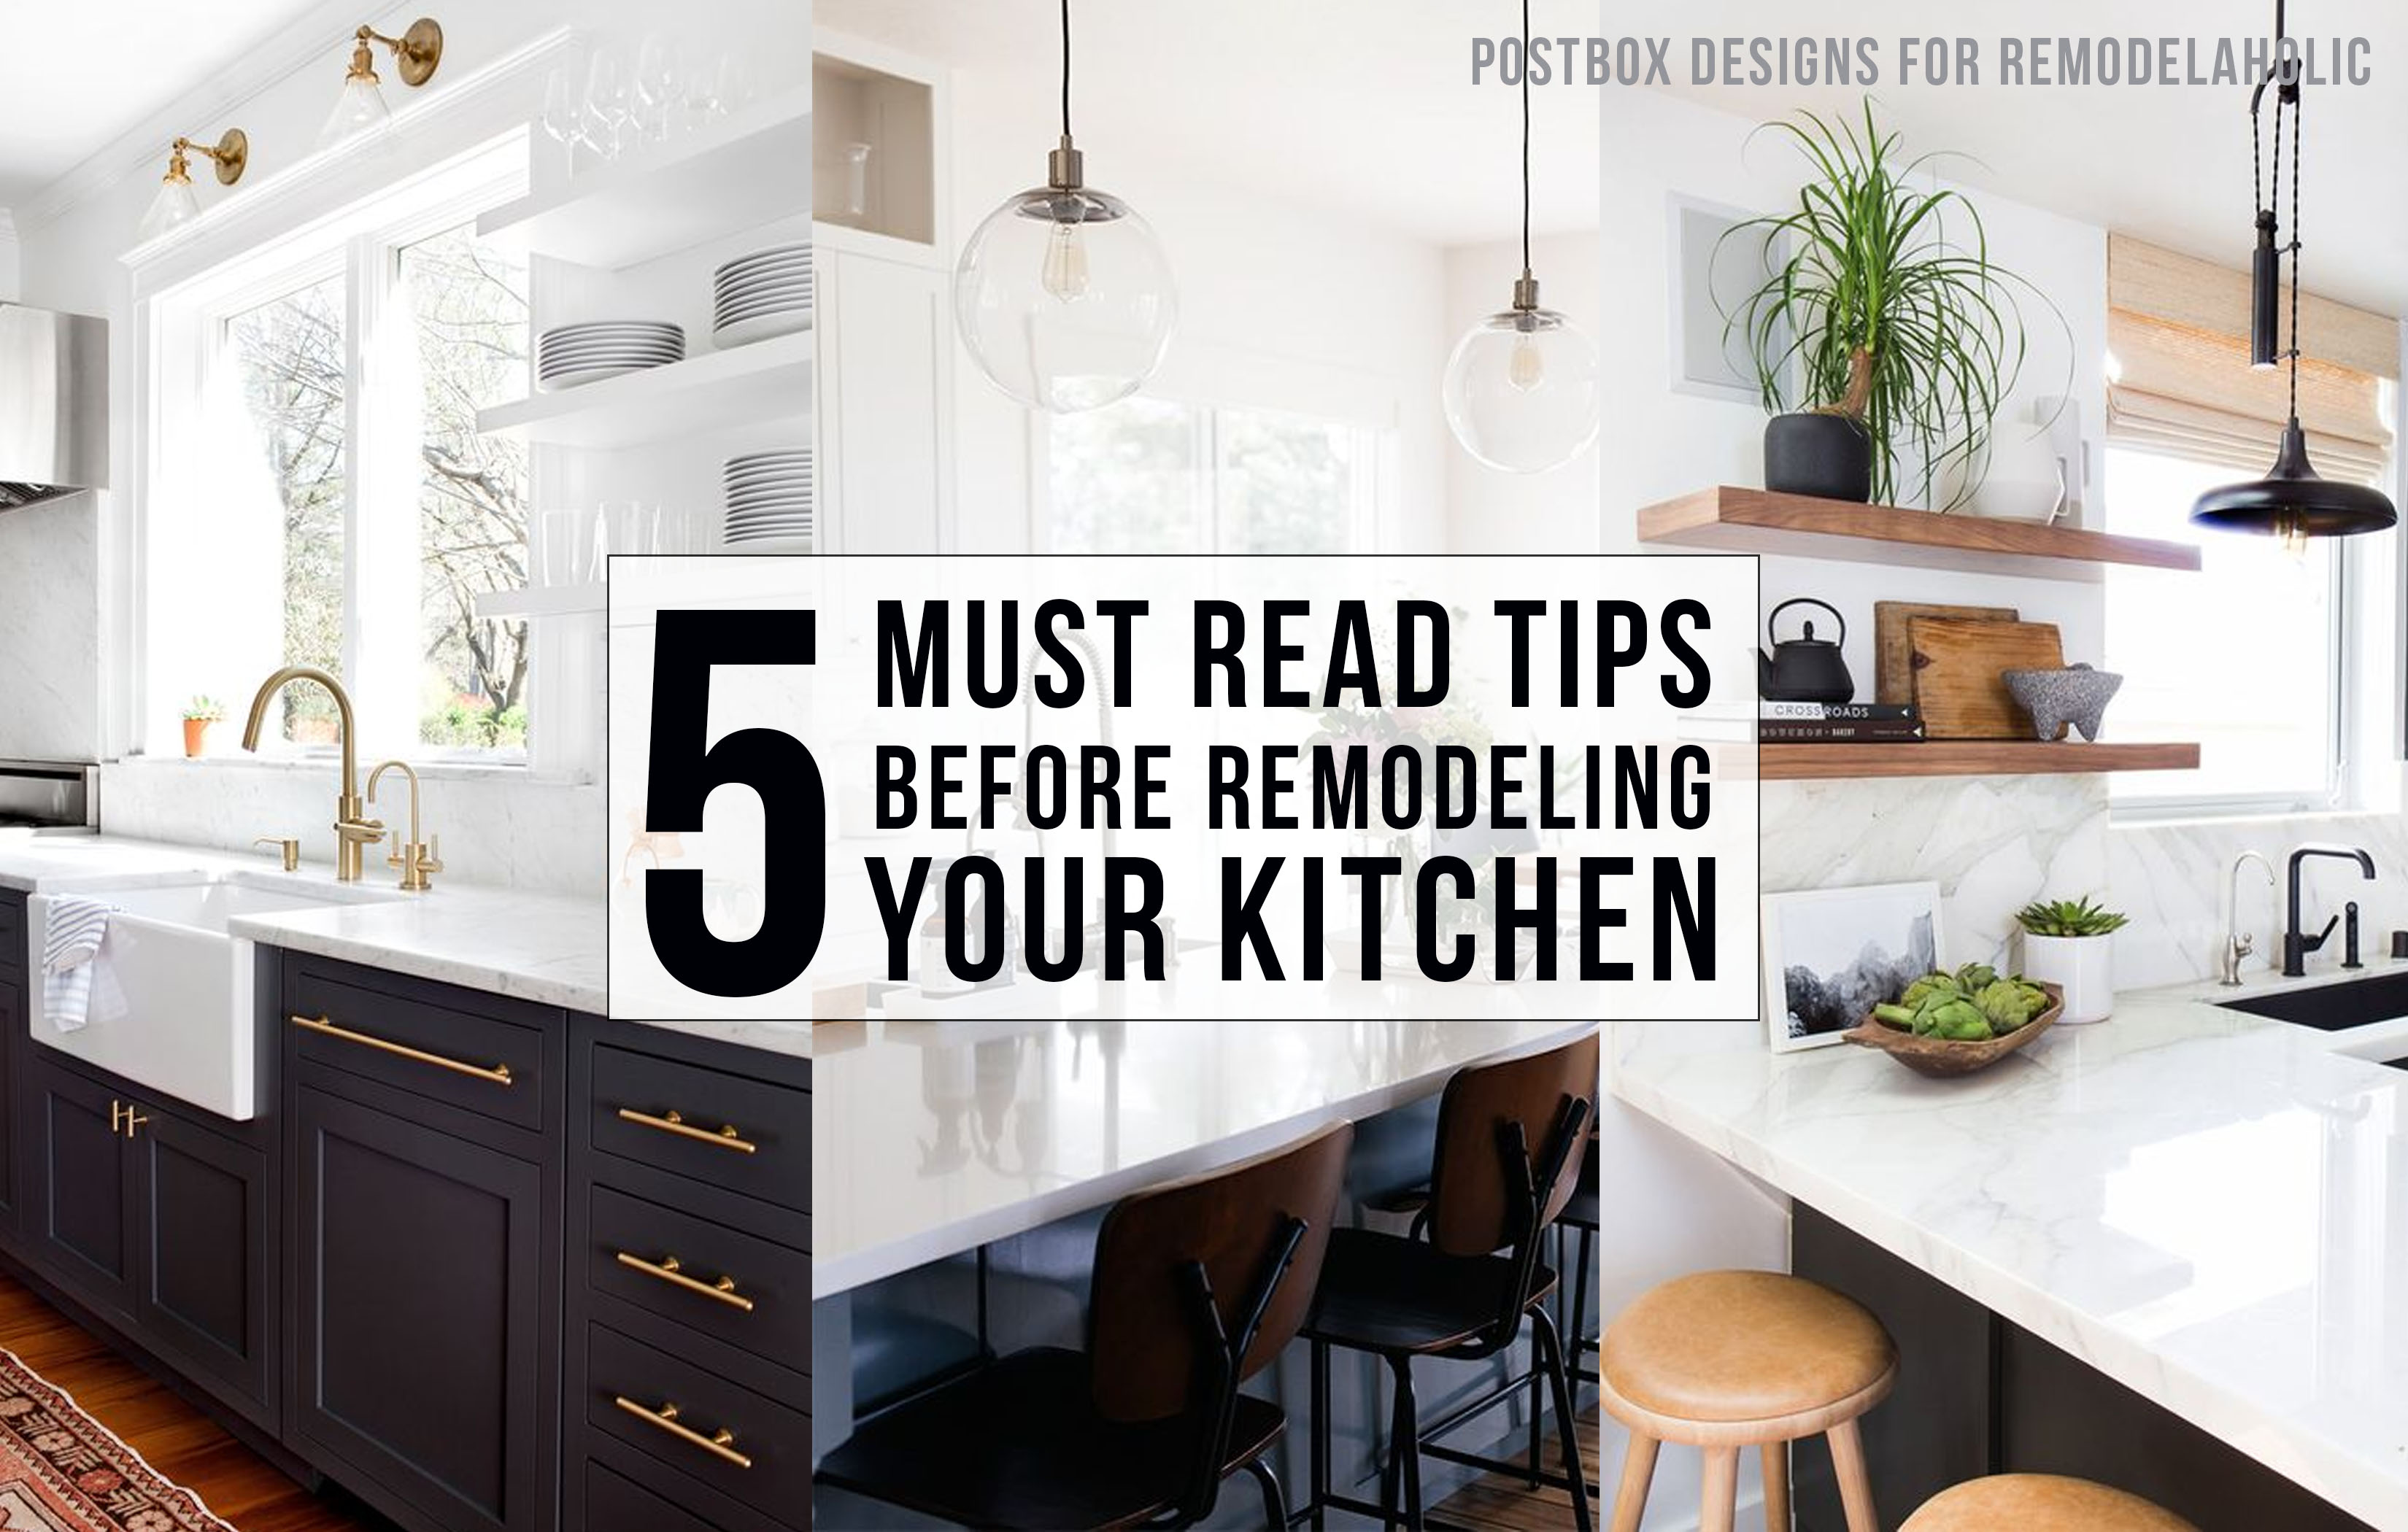 remodelaholic   5 must read tips before remodeling your kitchen + 3